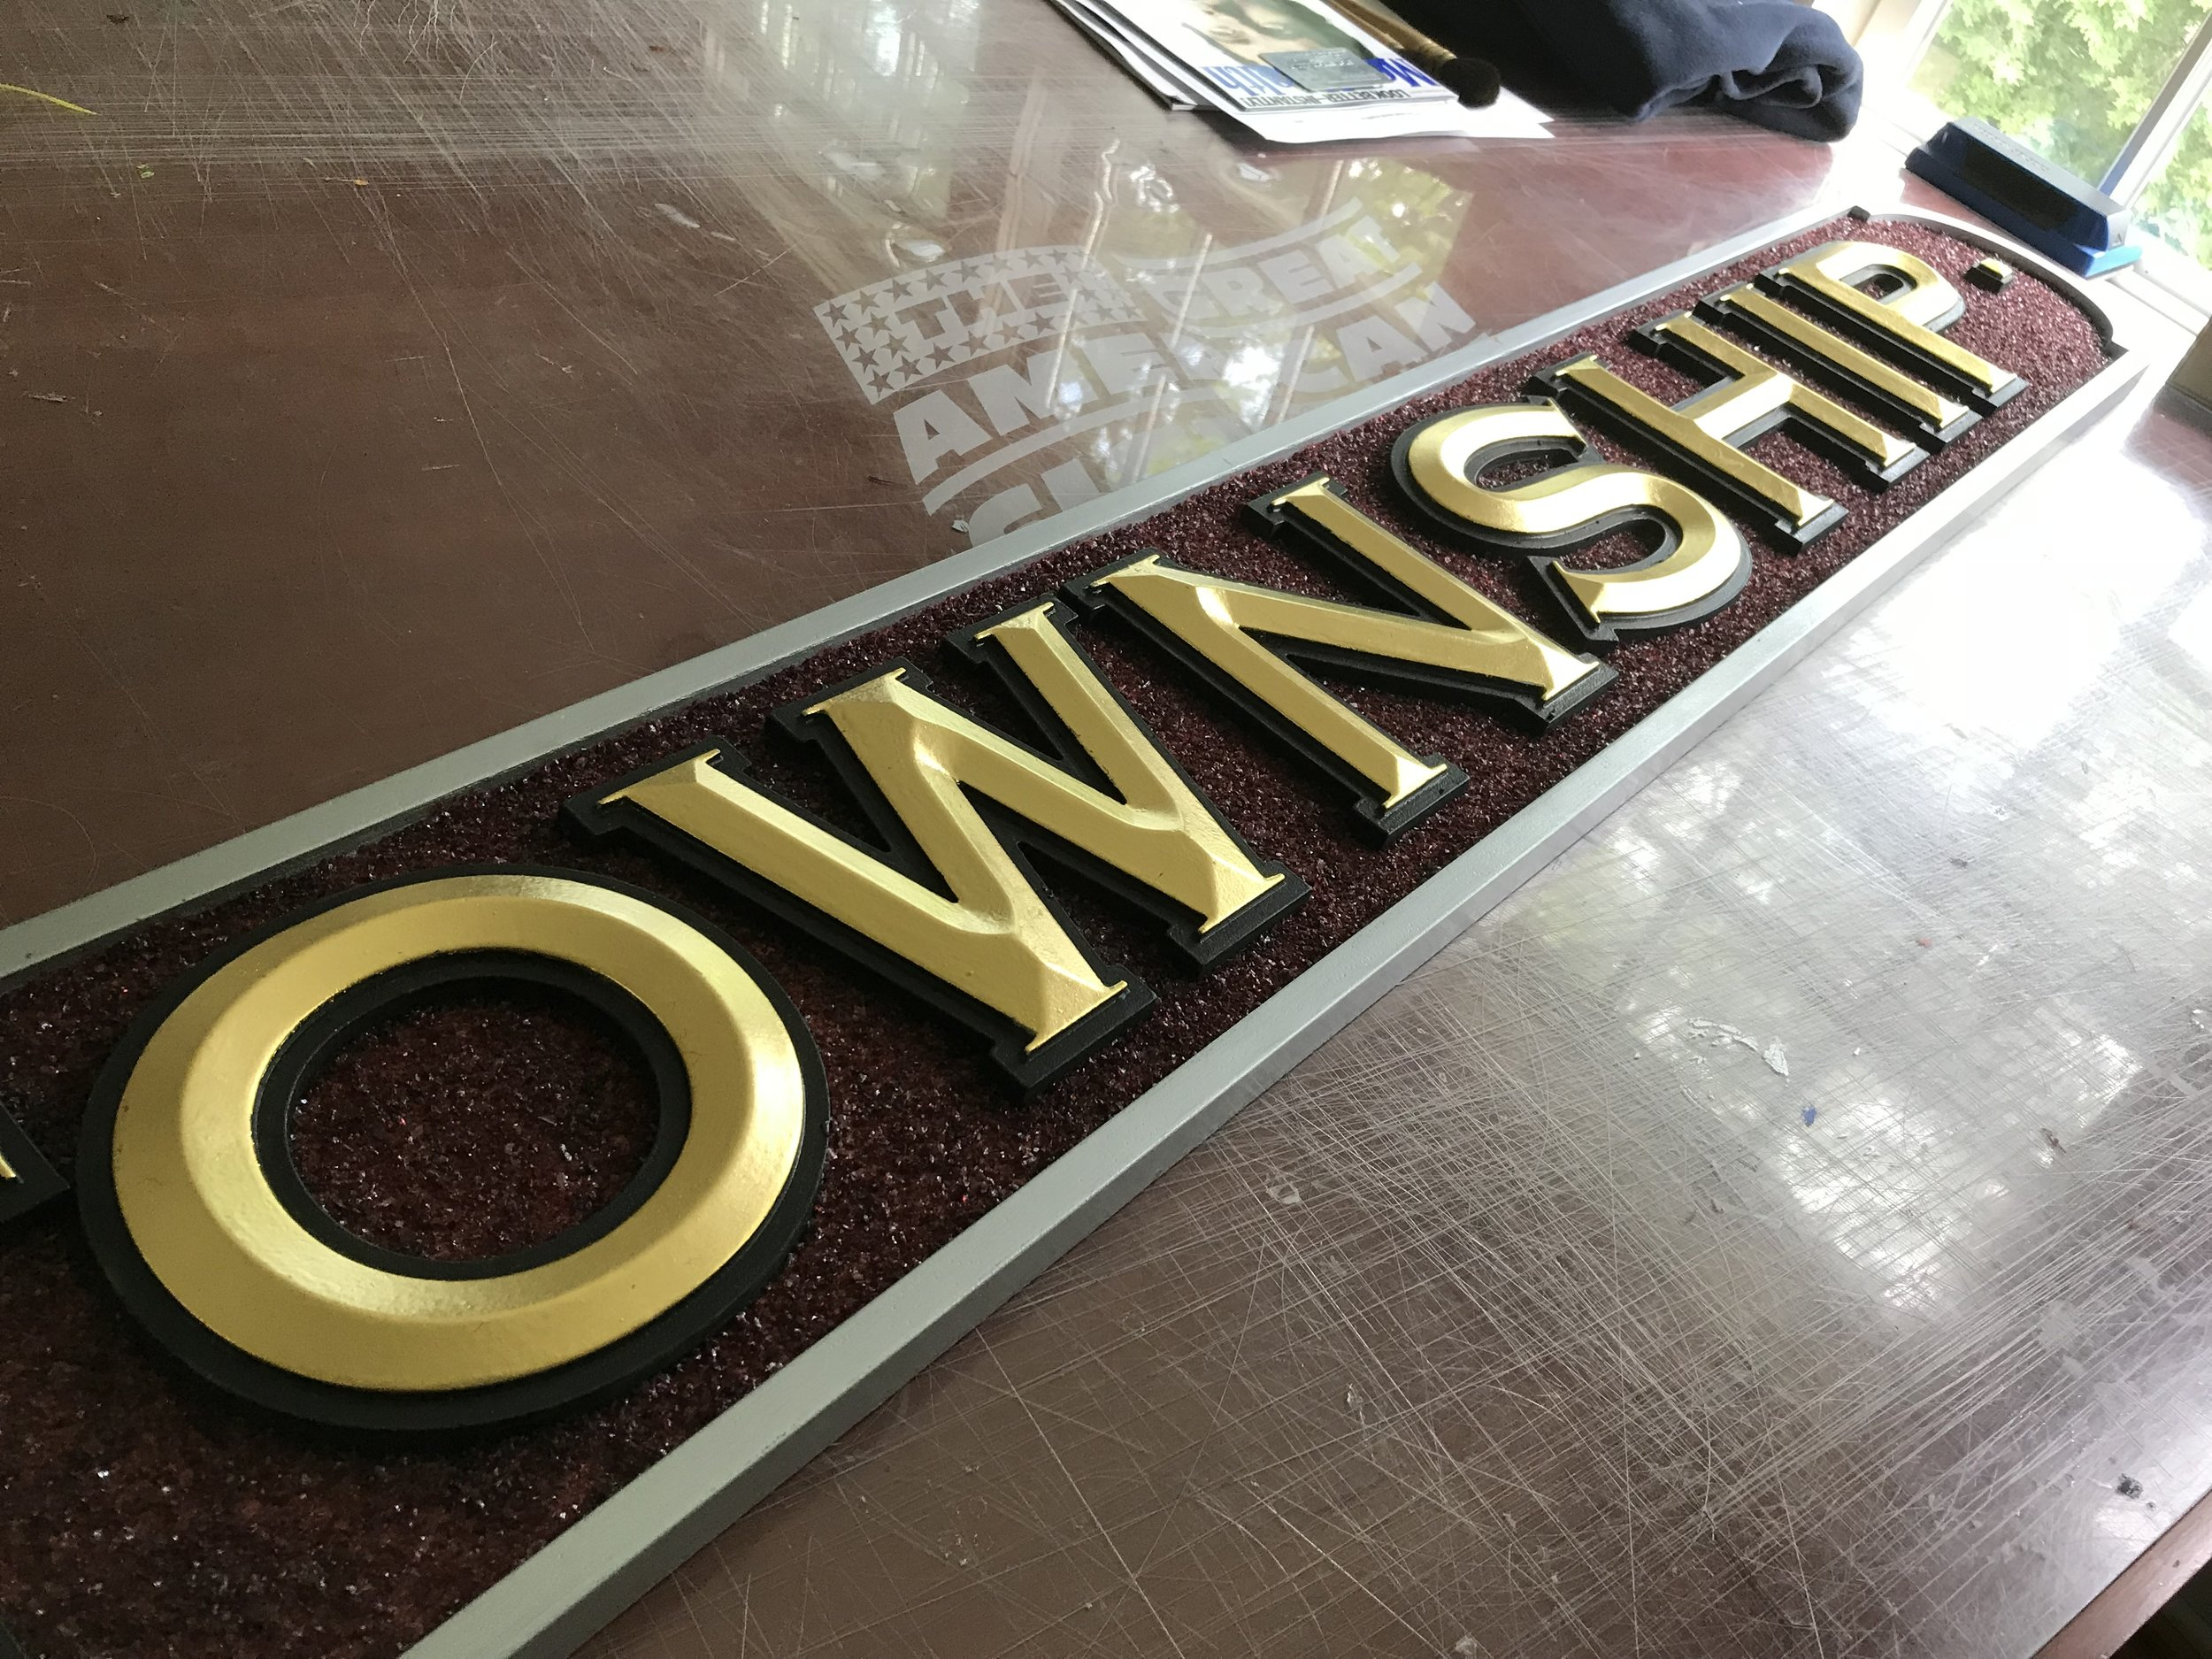 Our custom sign for Chatham FD is ready for installation with the completion of the CHATHAM TOWNSHIP wings. They feature raised prismatic letters finishe in 23.5K gold leaf im-orted from Italy against a background of crushed glass smalts from Germany. The border is palladium leaf, a tissue thin foil applied to the surface to give it a true metallic finish. With the completion of a few cut out letters, we will be ready to install.